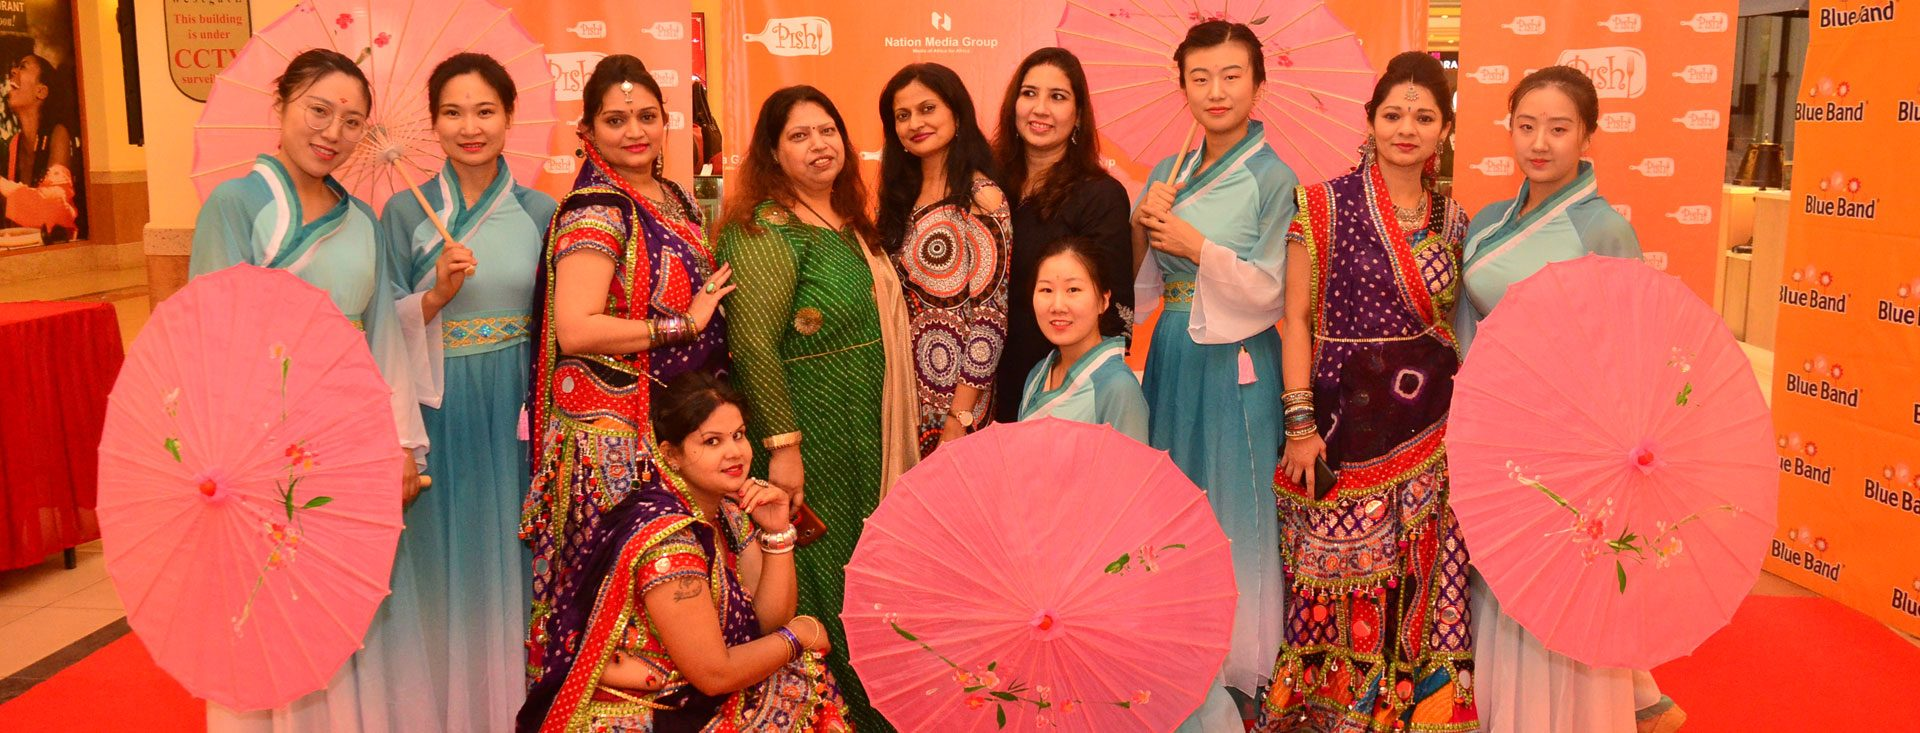 Asian Culinary Delights at The Pishi Indo-Chinese Food Expo